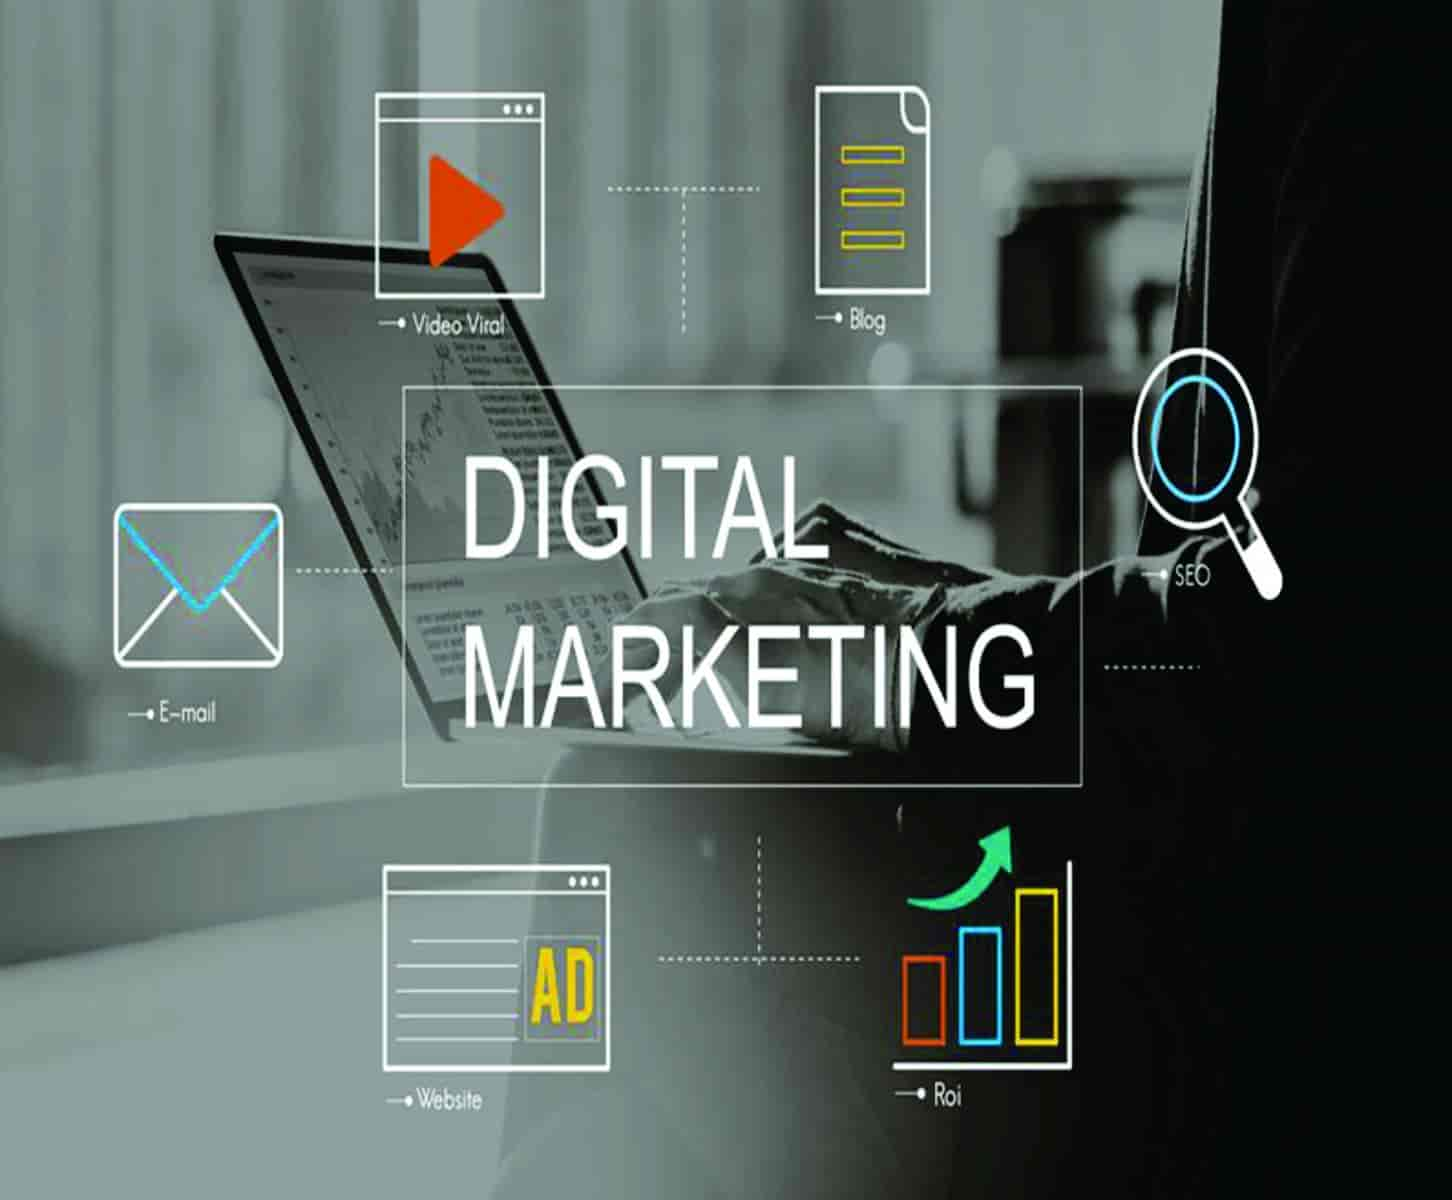 Digital Marketing Tổng Quan